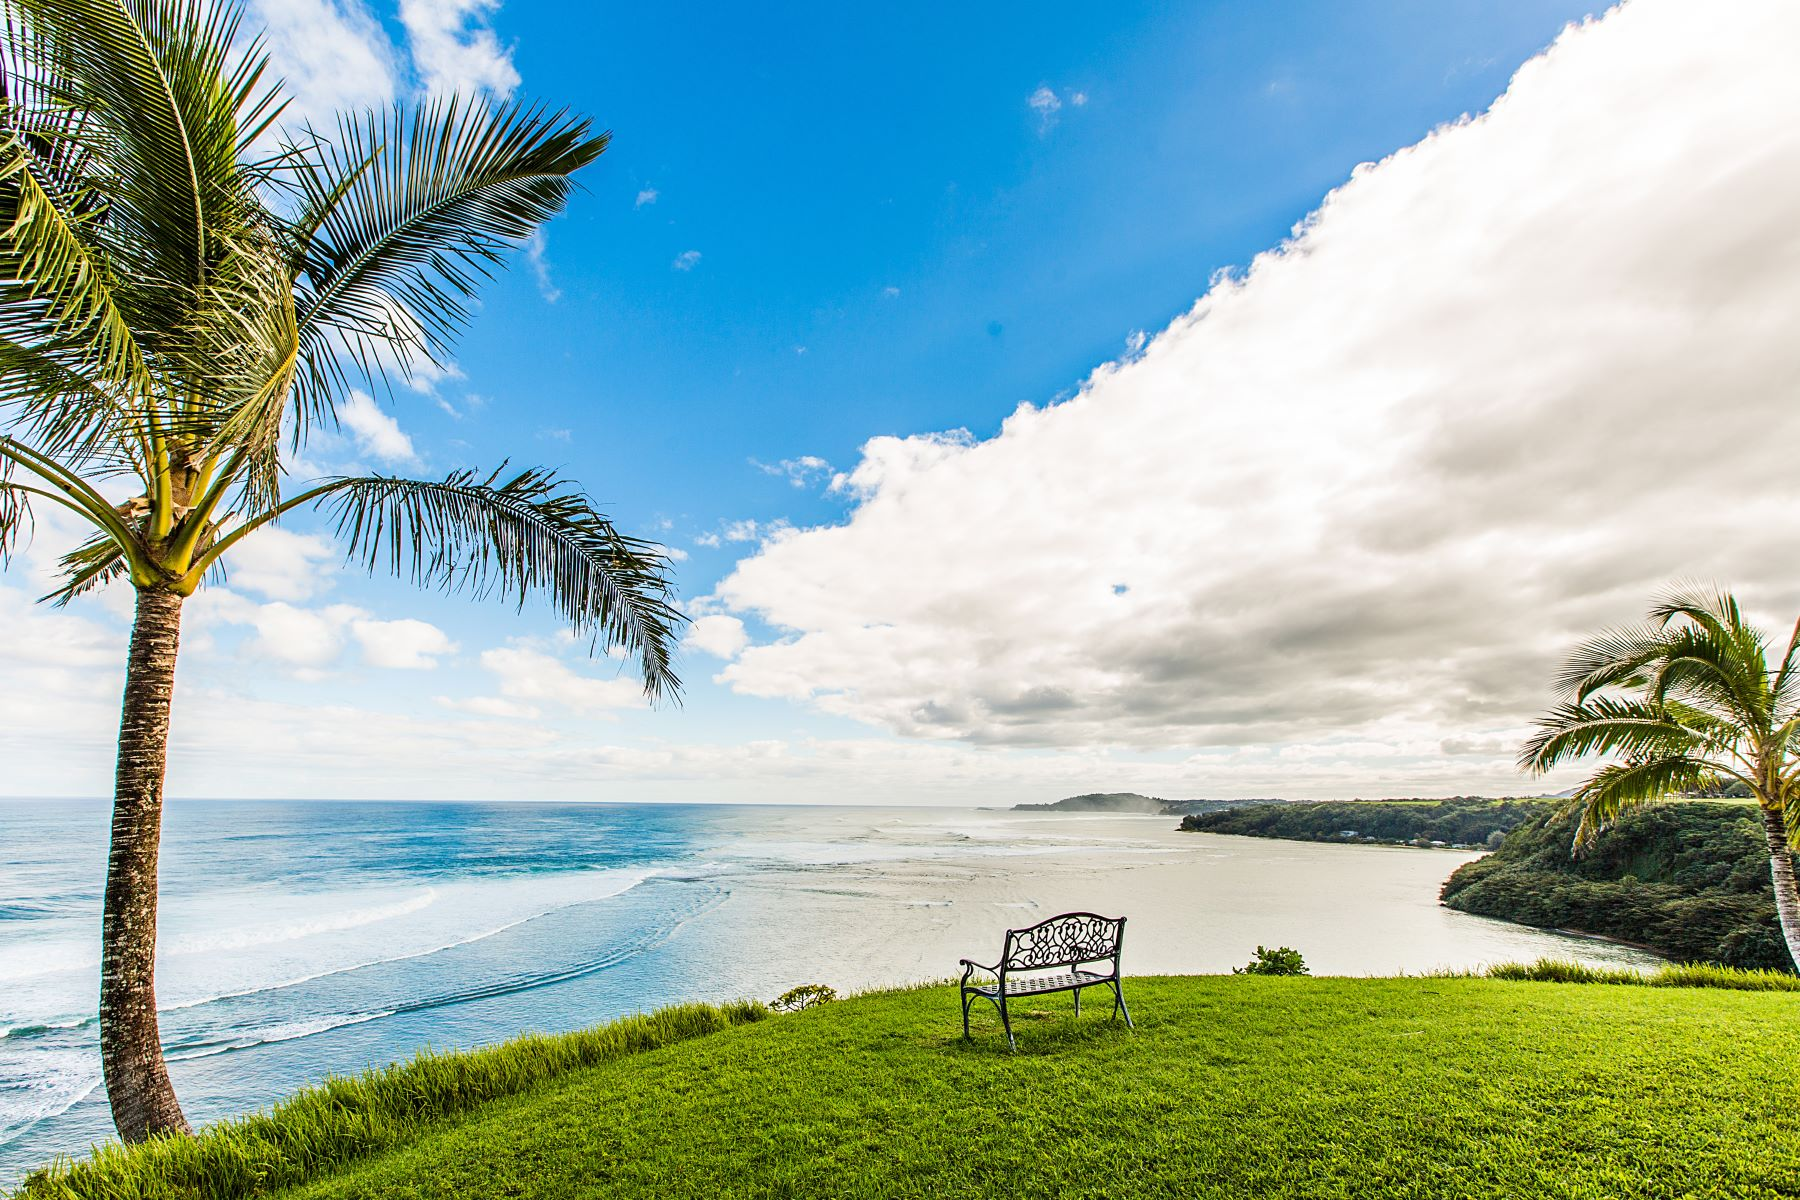 شقة بعمارة للـ Sale في Ocean Views from this Two Bedroom, Two Bath Condominium on Kauai 3700 Kamehameha Road #D7, Princeville, Hawaii, 96722 United States